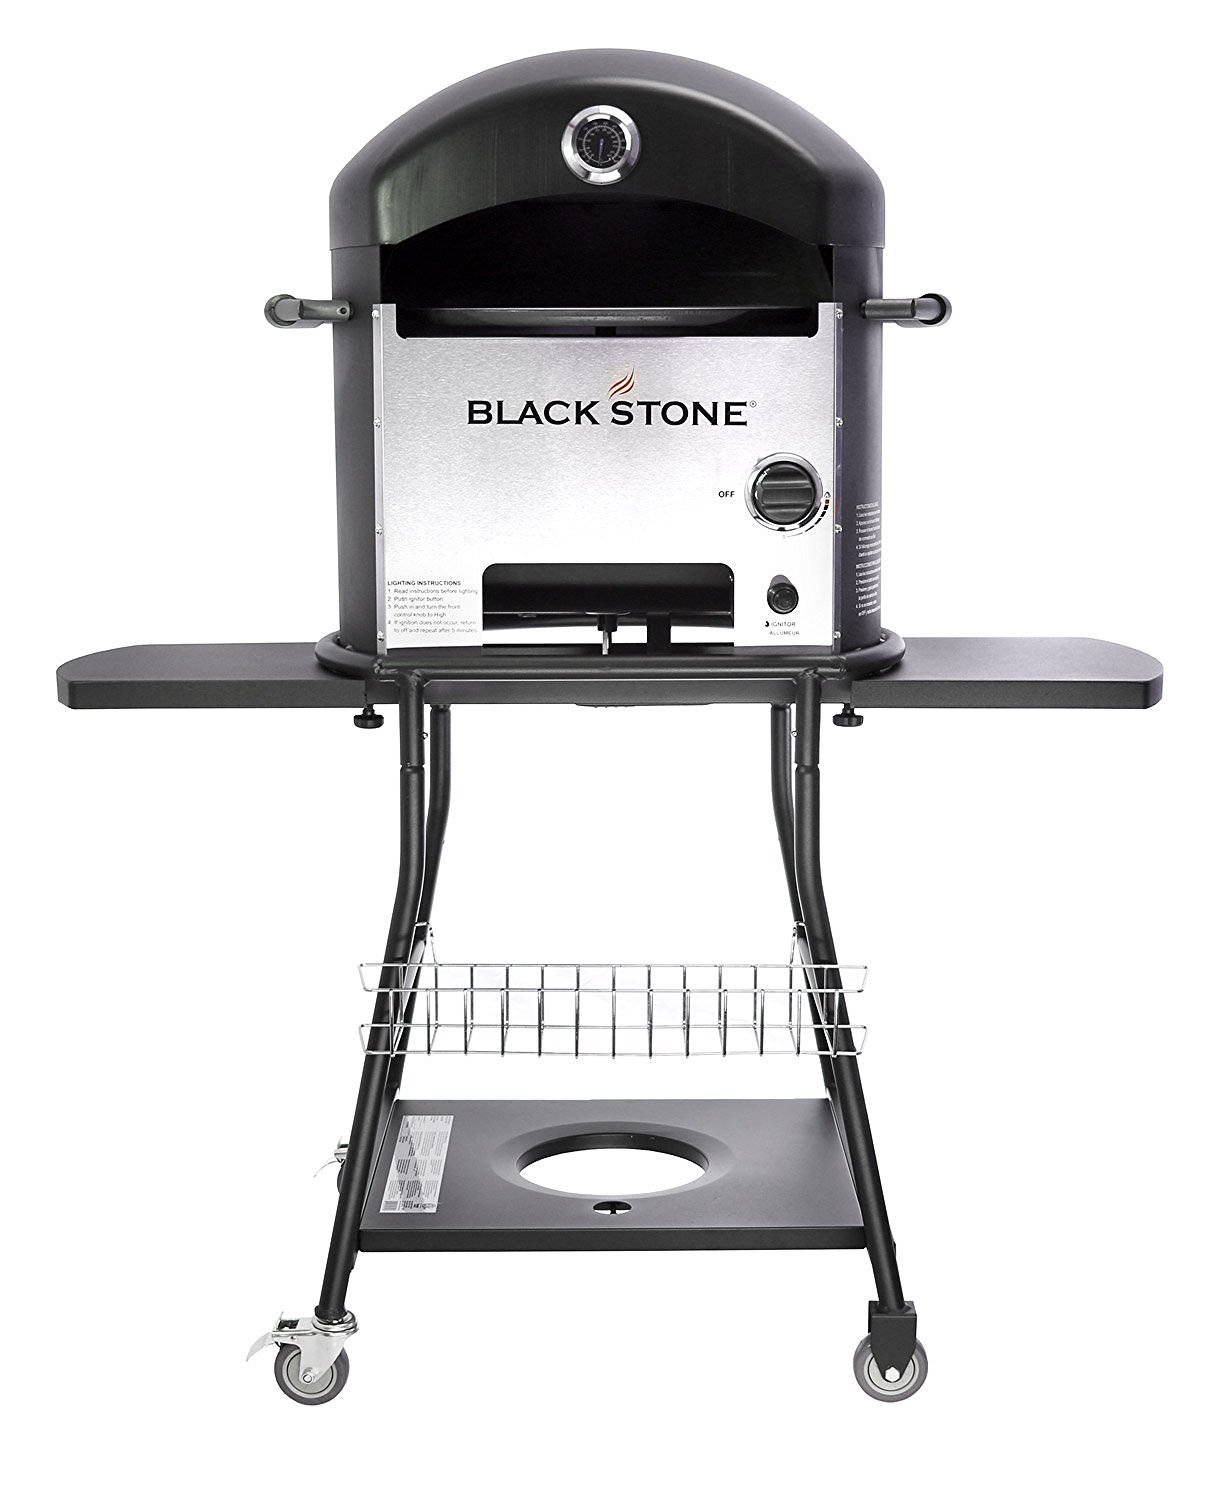 Good Amazon.com : Blackstone Outdoor Pizza Oven For Outdoor Cooking   Electric  Ignition   2x Faster Than Other Pizza Ovens : Outdoor Kitchen Ovens :  Garden U0026 ...